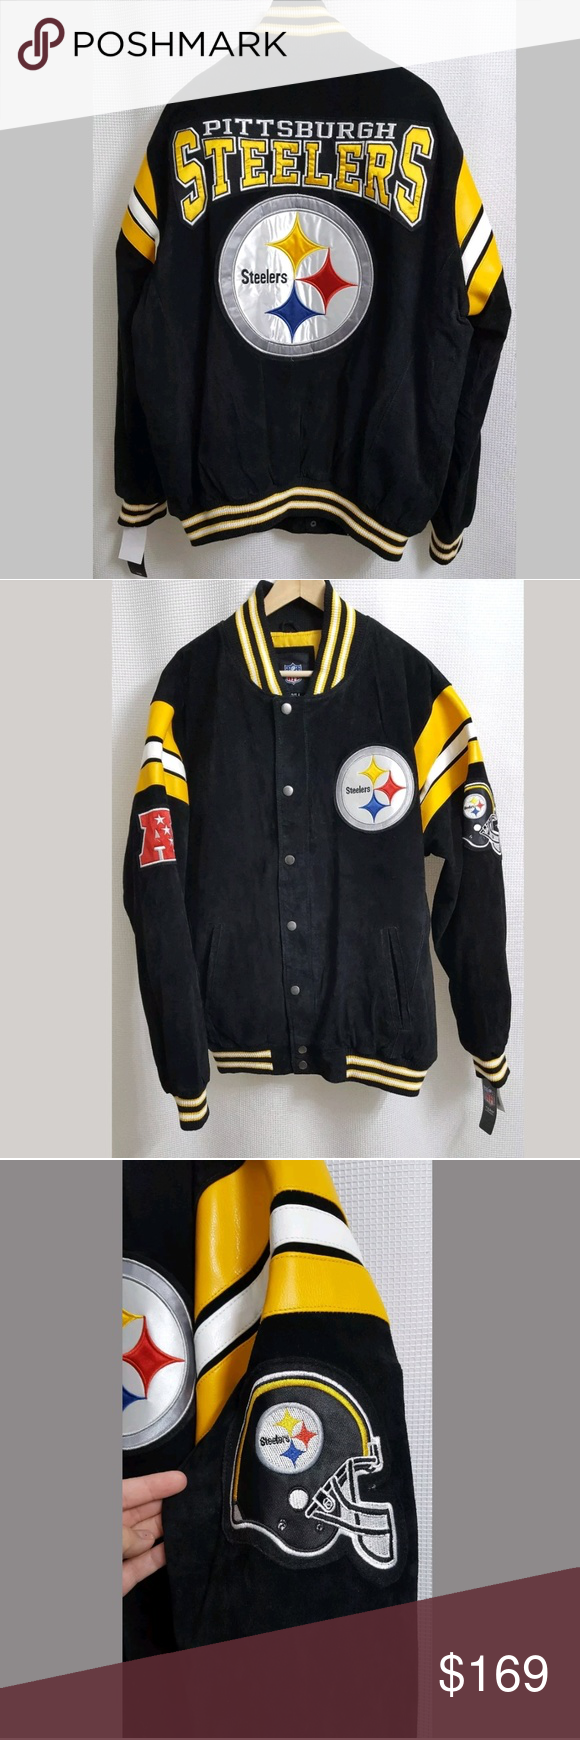 NWT NFL Pittsburgh Steelers Suede Leather Varsity This is